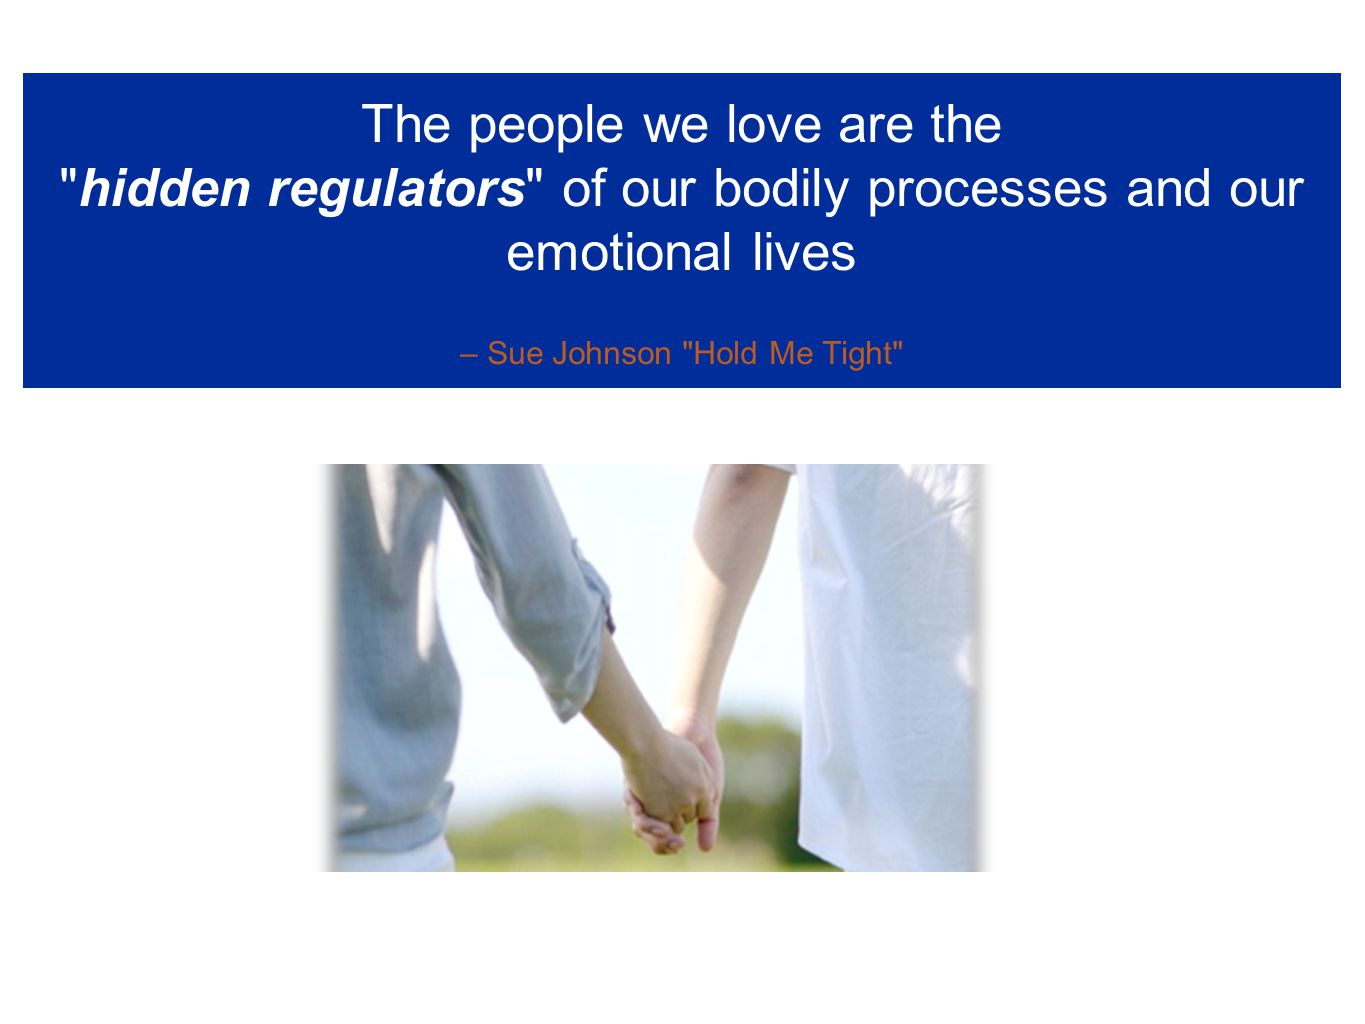 The people we love are the hidden regulators of our bodily processes and our emotional lives – Sue Johnson Hold Me Tight